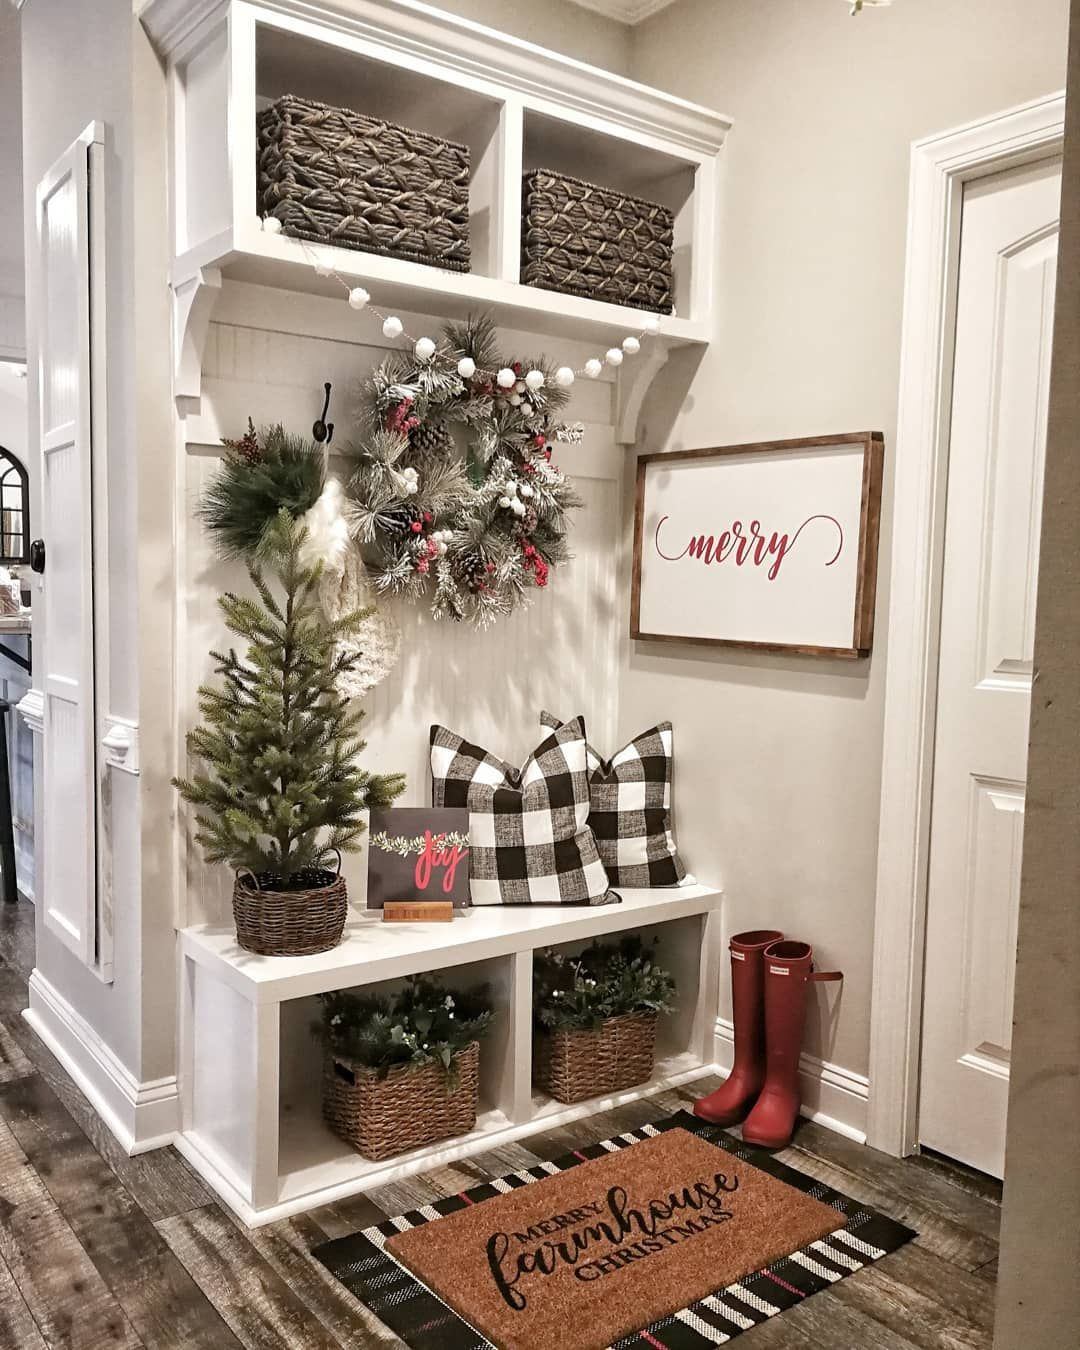 uncommon article gives you the facts on farmhouse decor living room wall color in diy home pinterest also rh